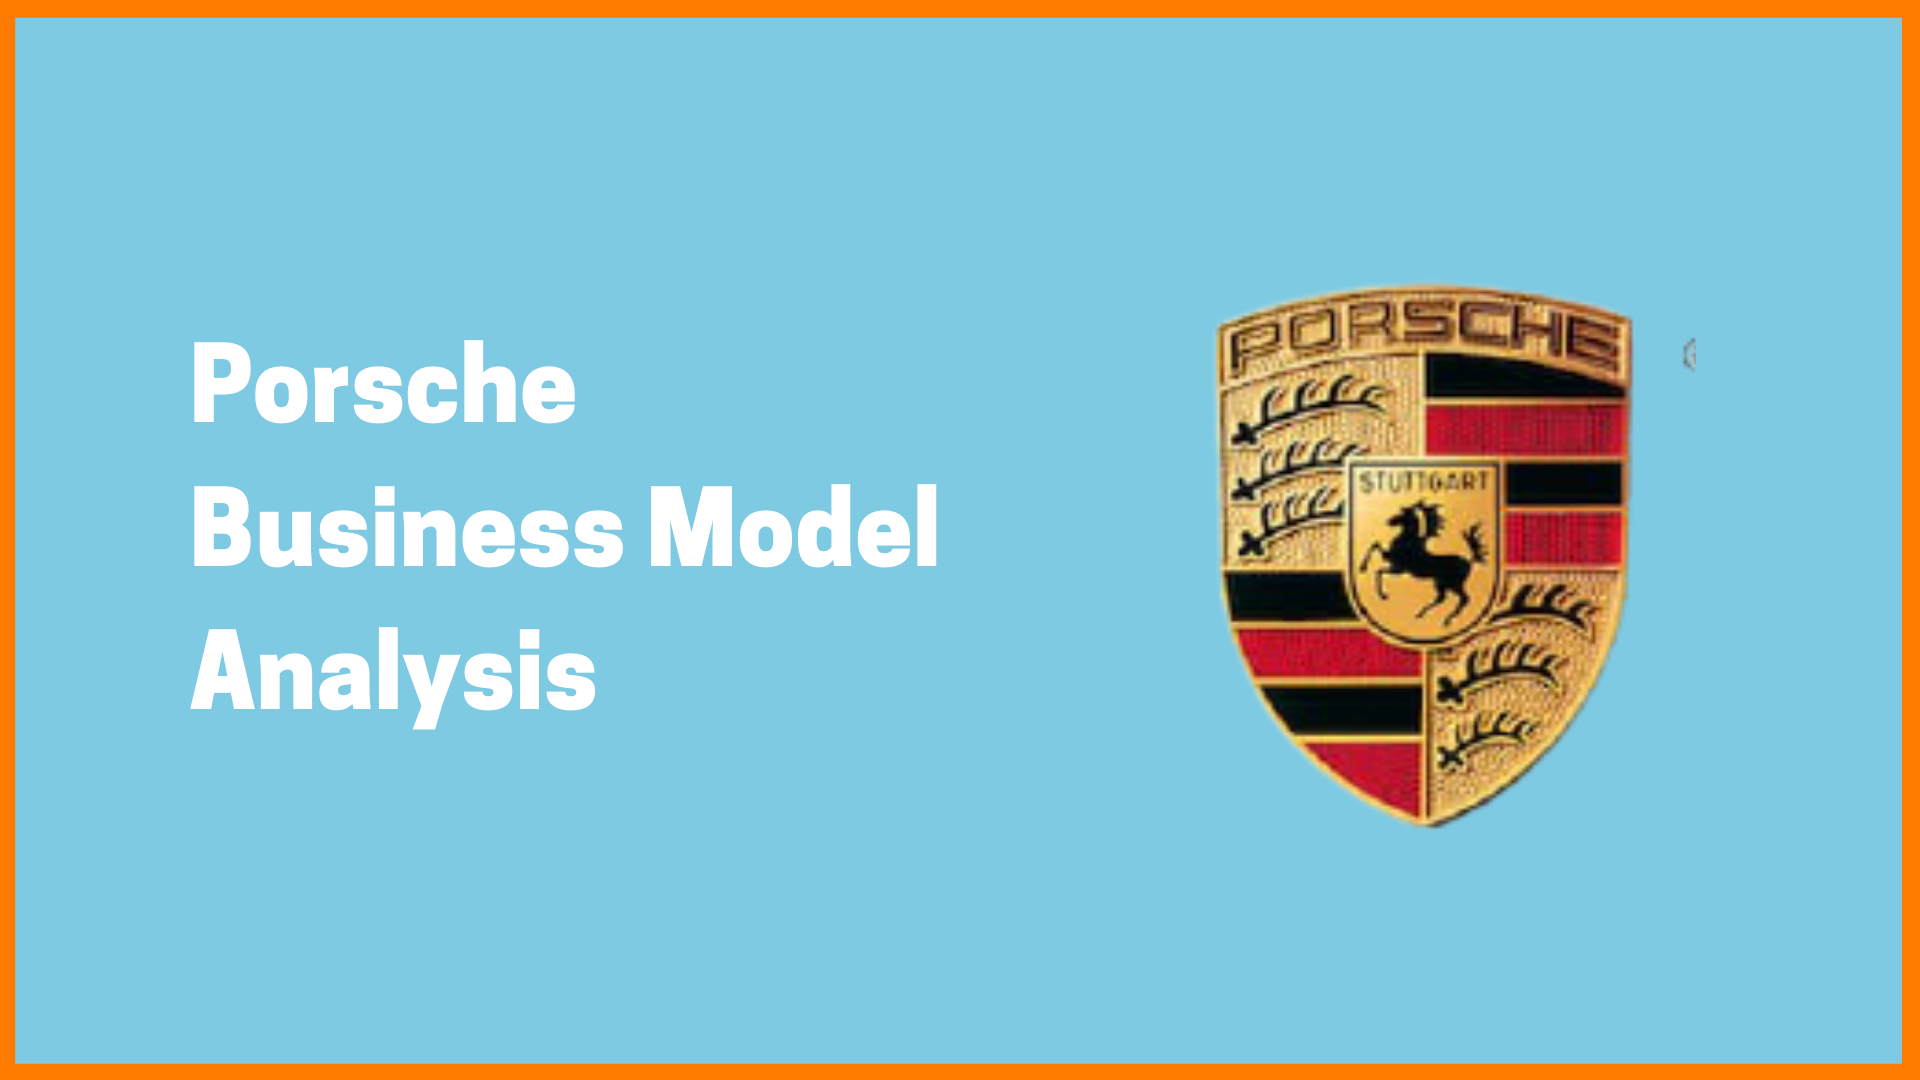 Porsche Case Study- Analysis About Its Business Model